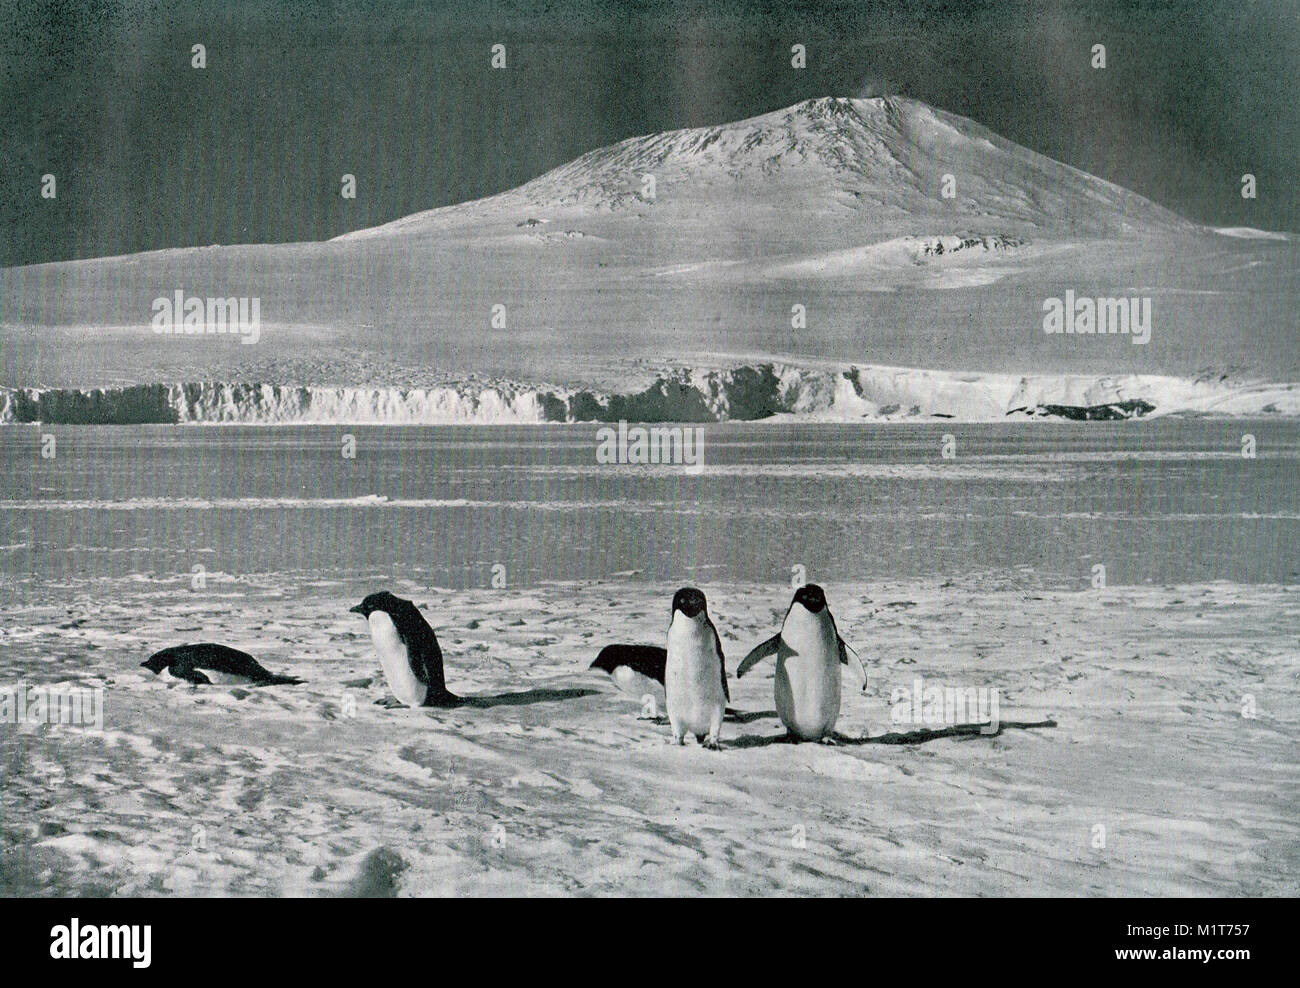 Penguins at Mount Erebus, Ross island, Antarctica.  Scott's final expedition - Stock Image